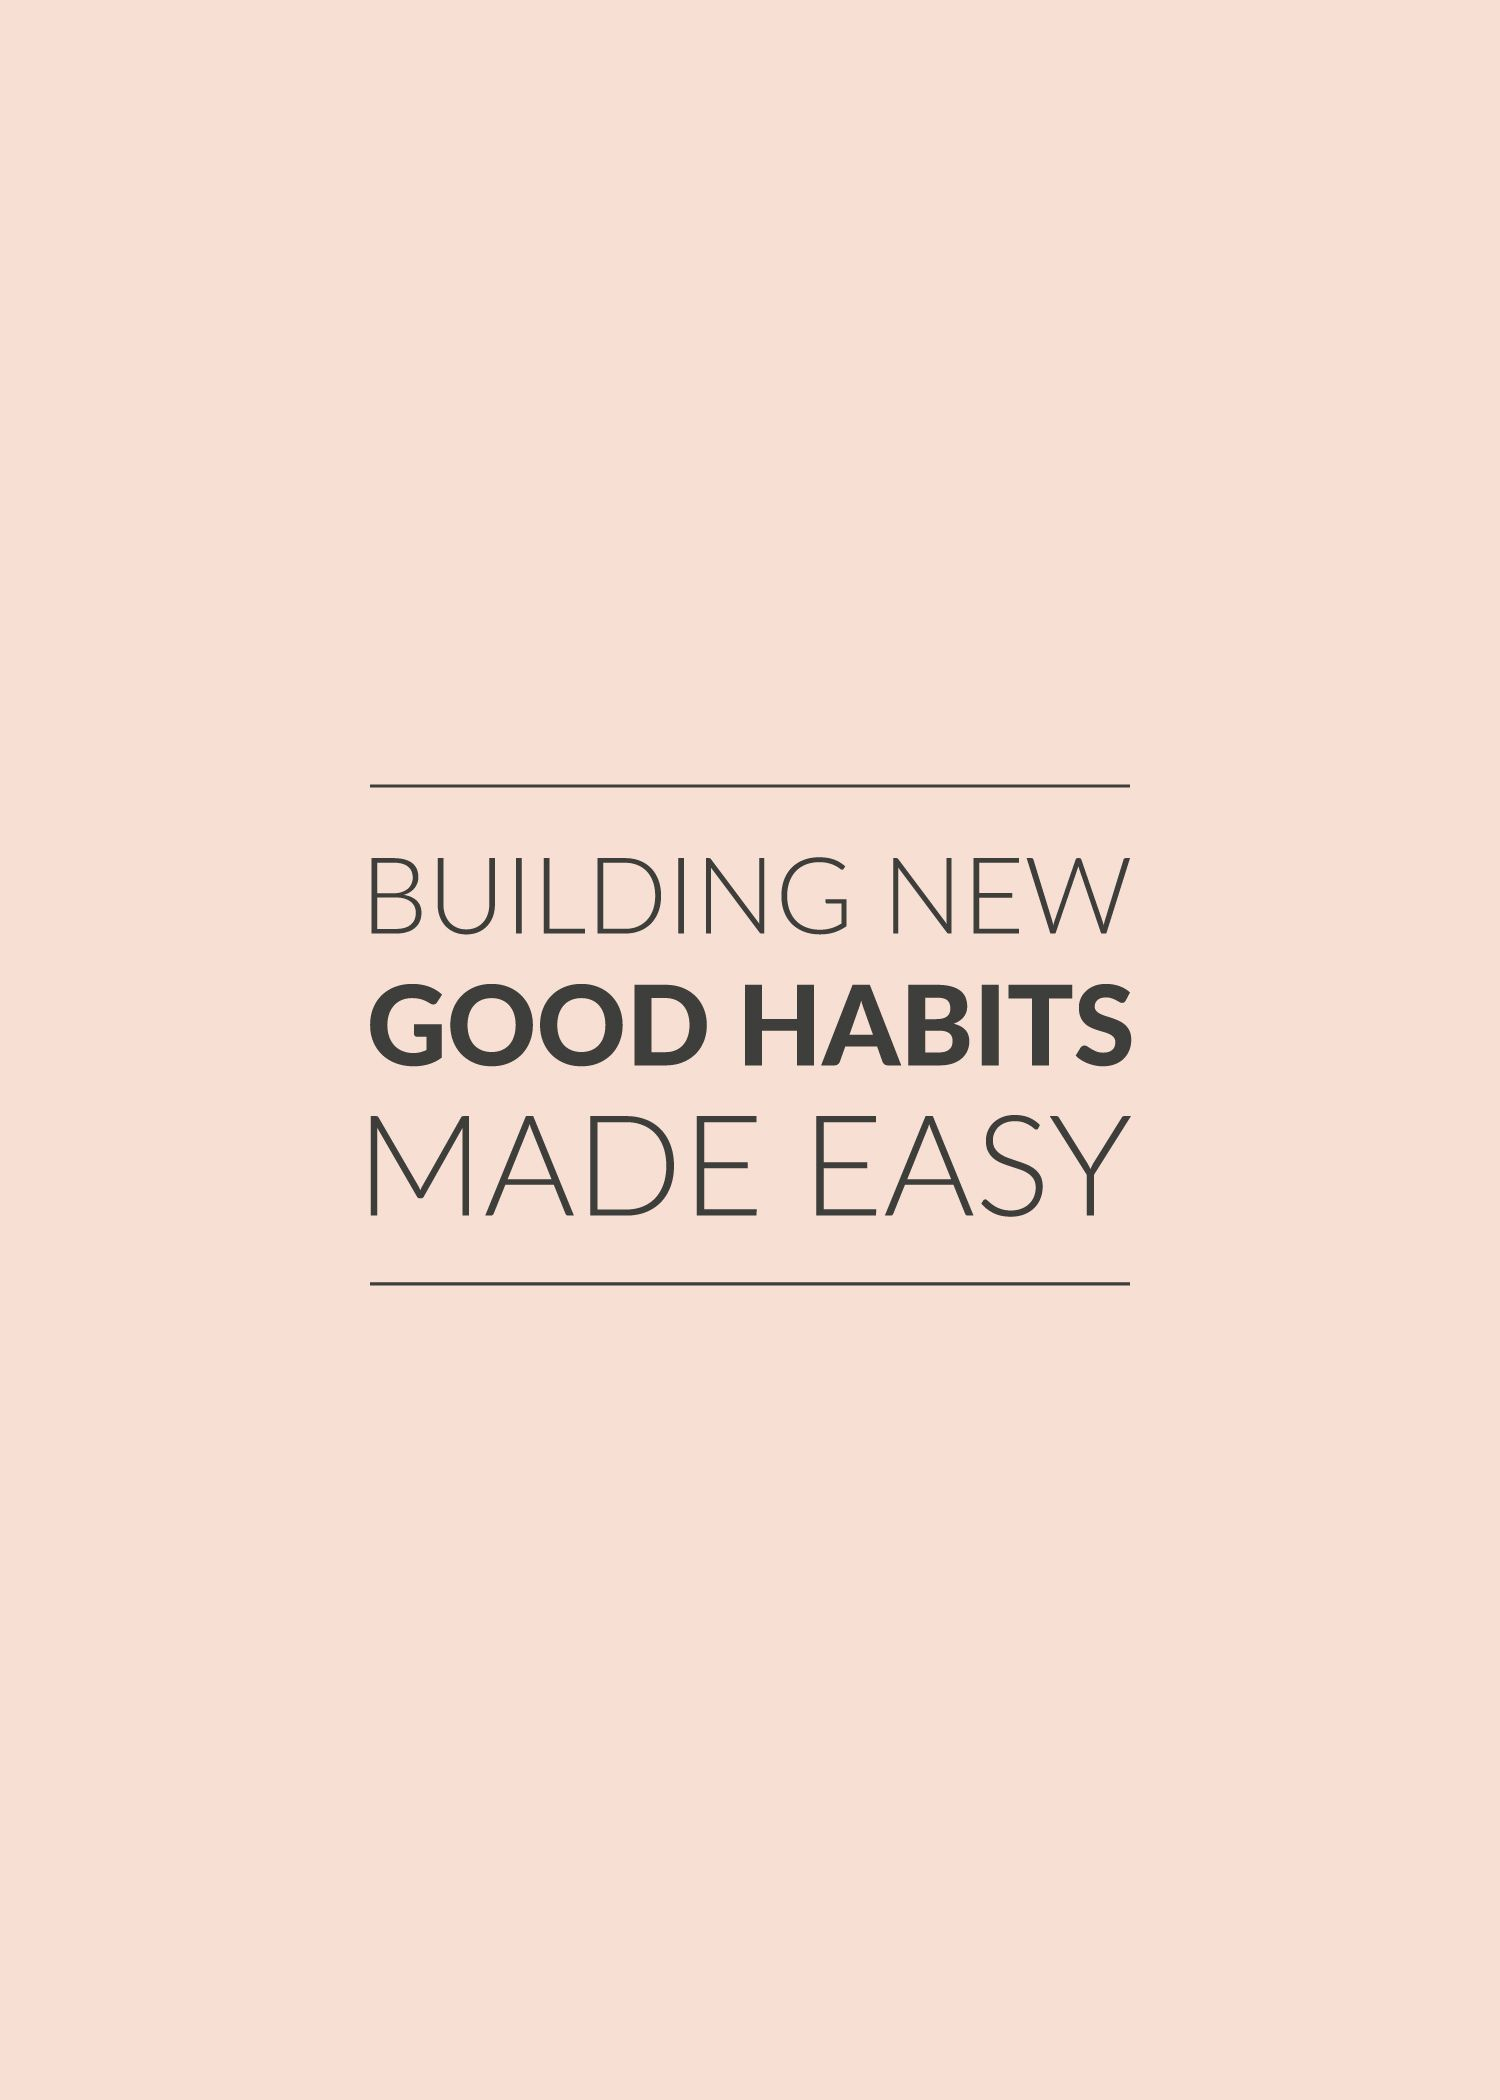 Building New Good Habits Made Easy With Images